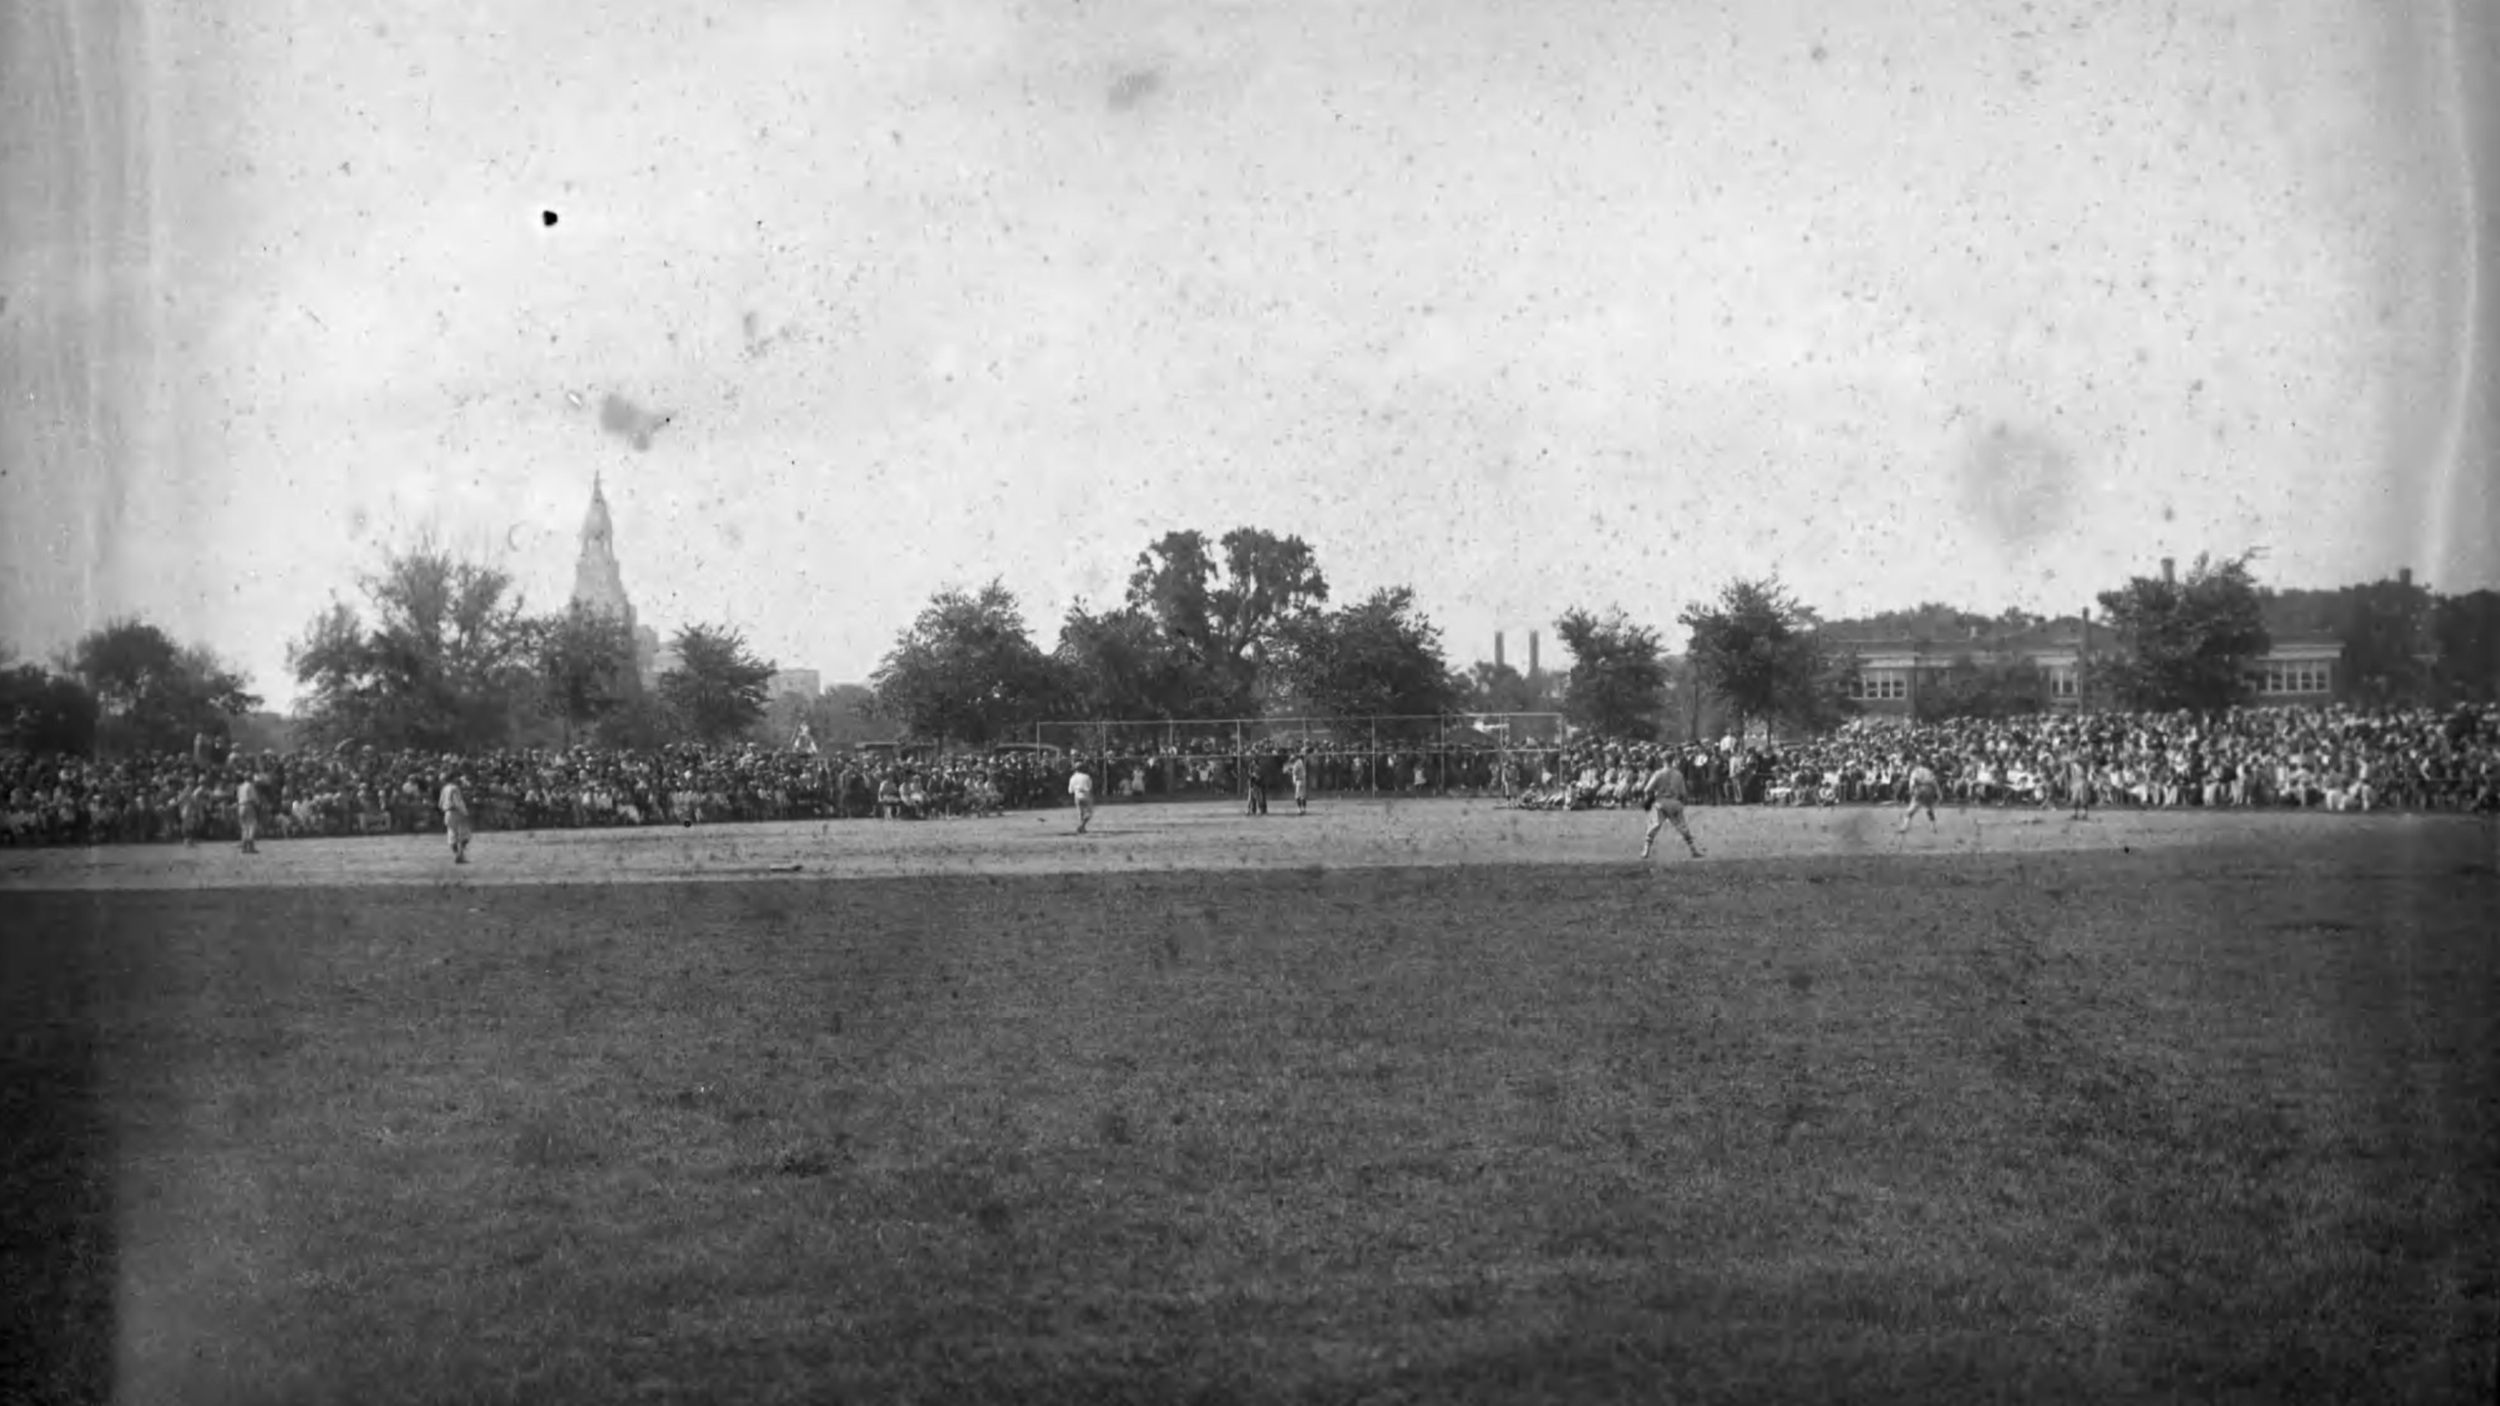 Colt Park, Hartford, Connecticut, 1926.